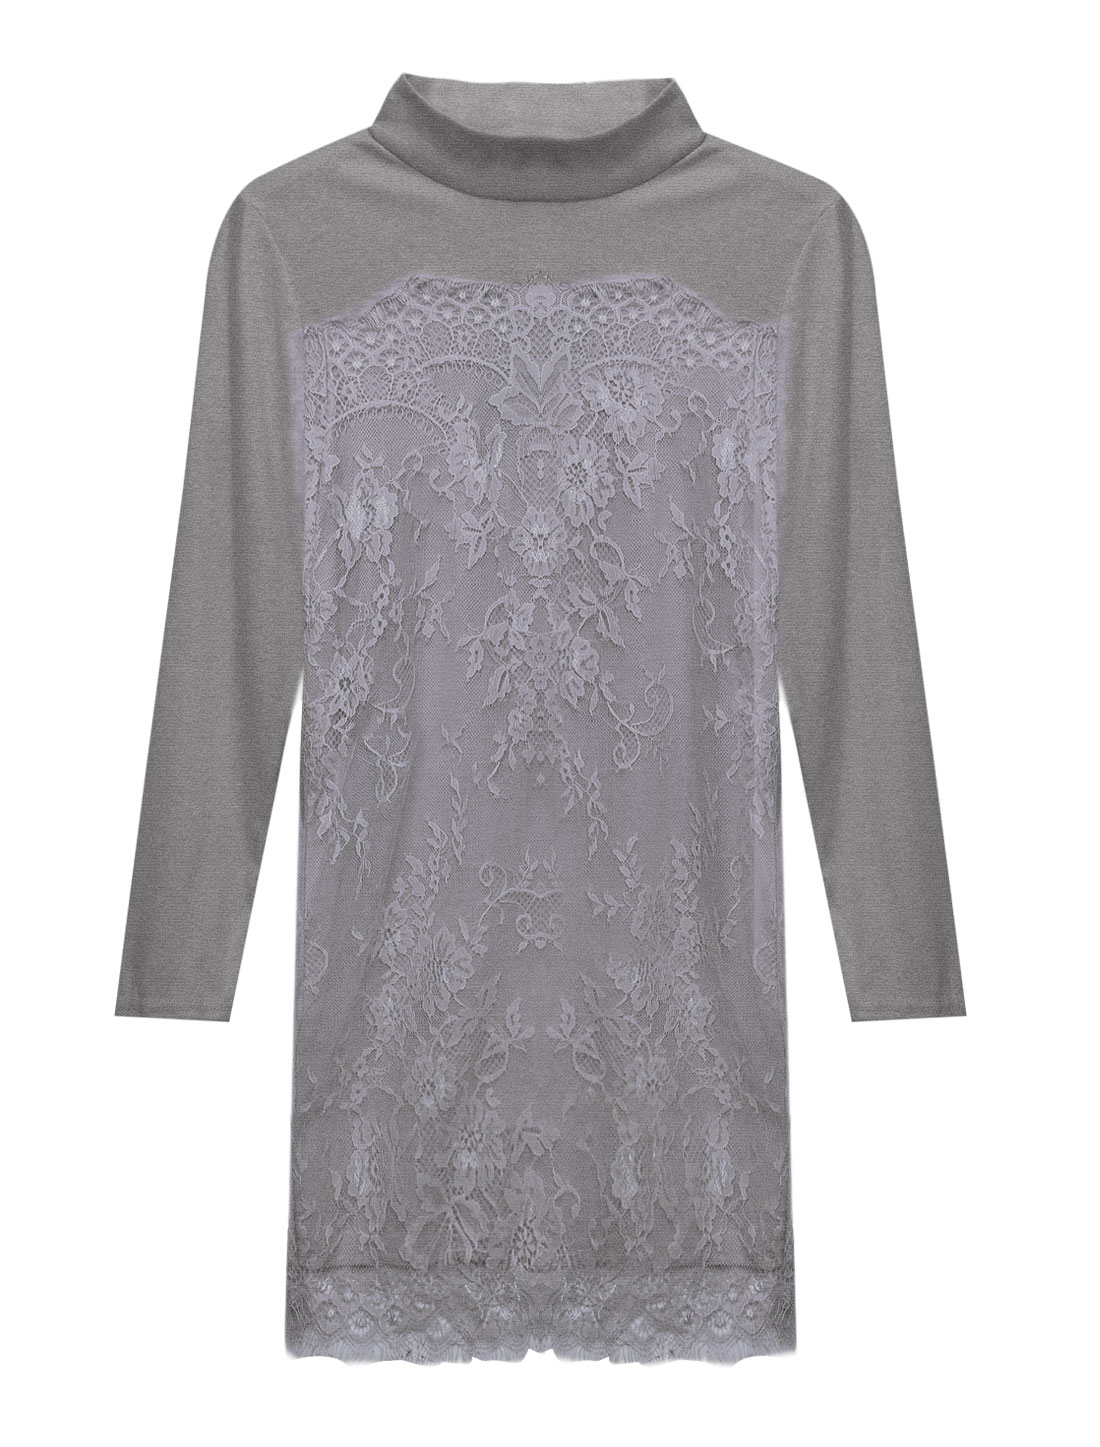 Women Long Sleeves Panel Design Unlined Lace Casual Dress Gray XS